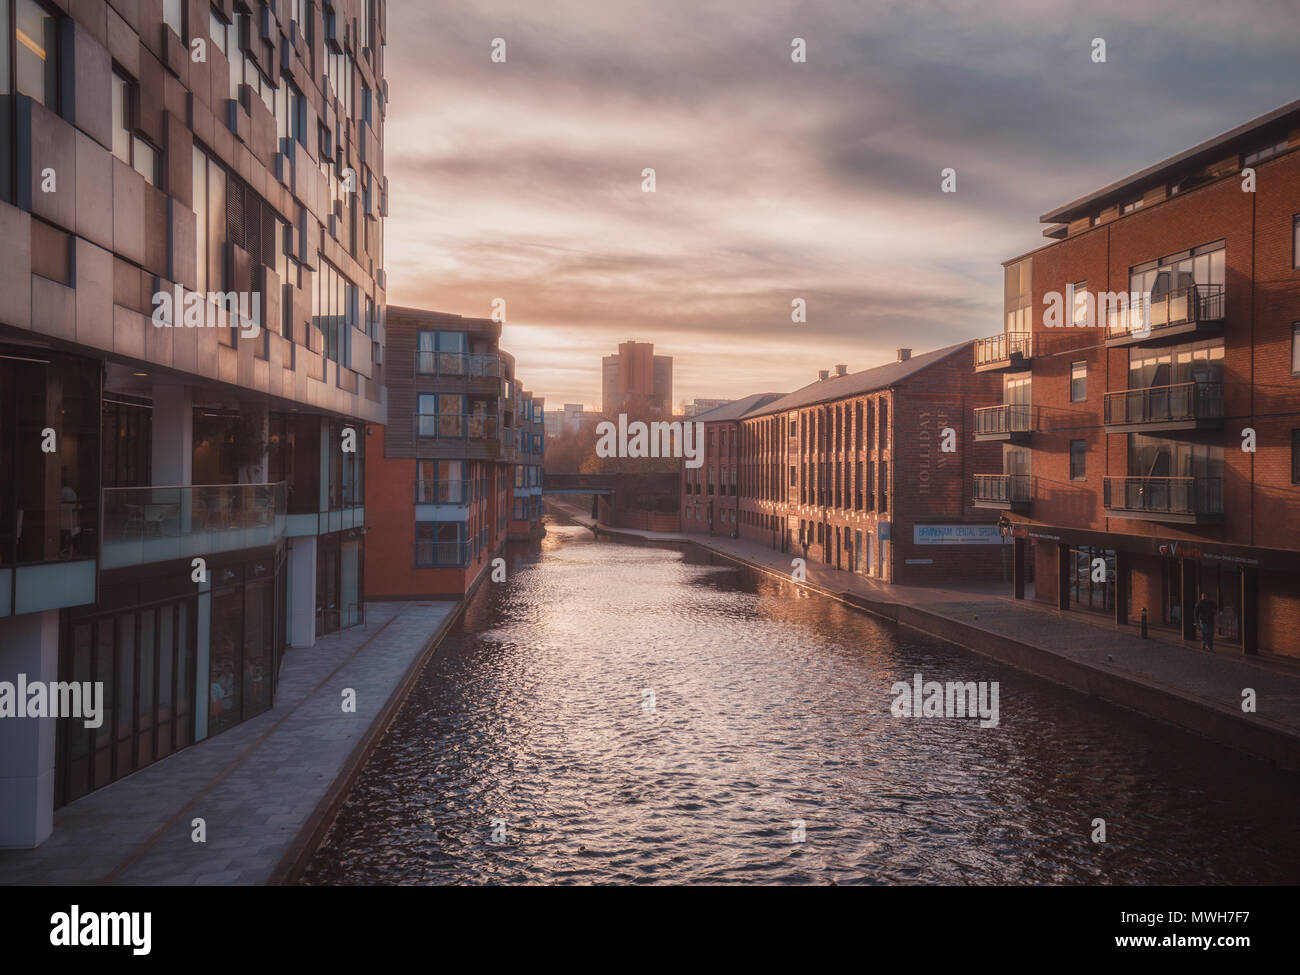 Sonnenuntergang in Gas Street Basin Stockbild